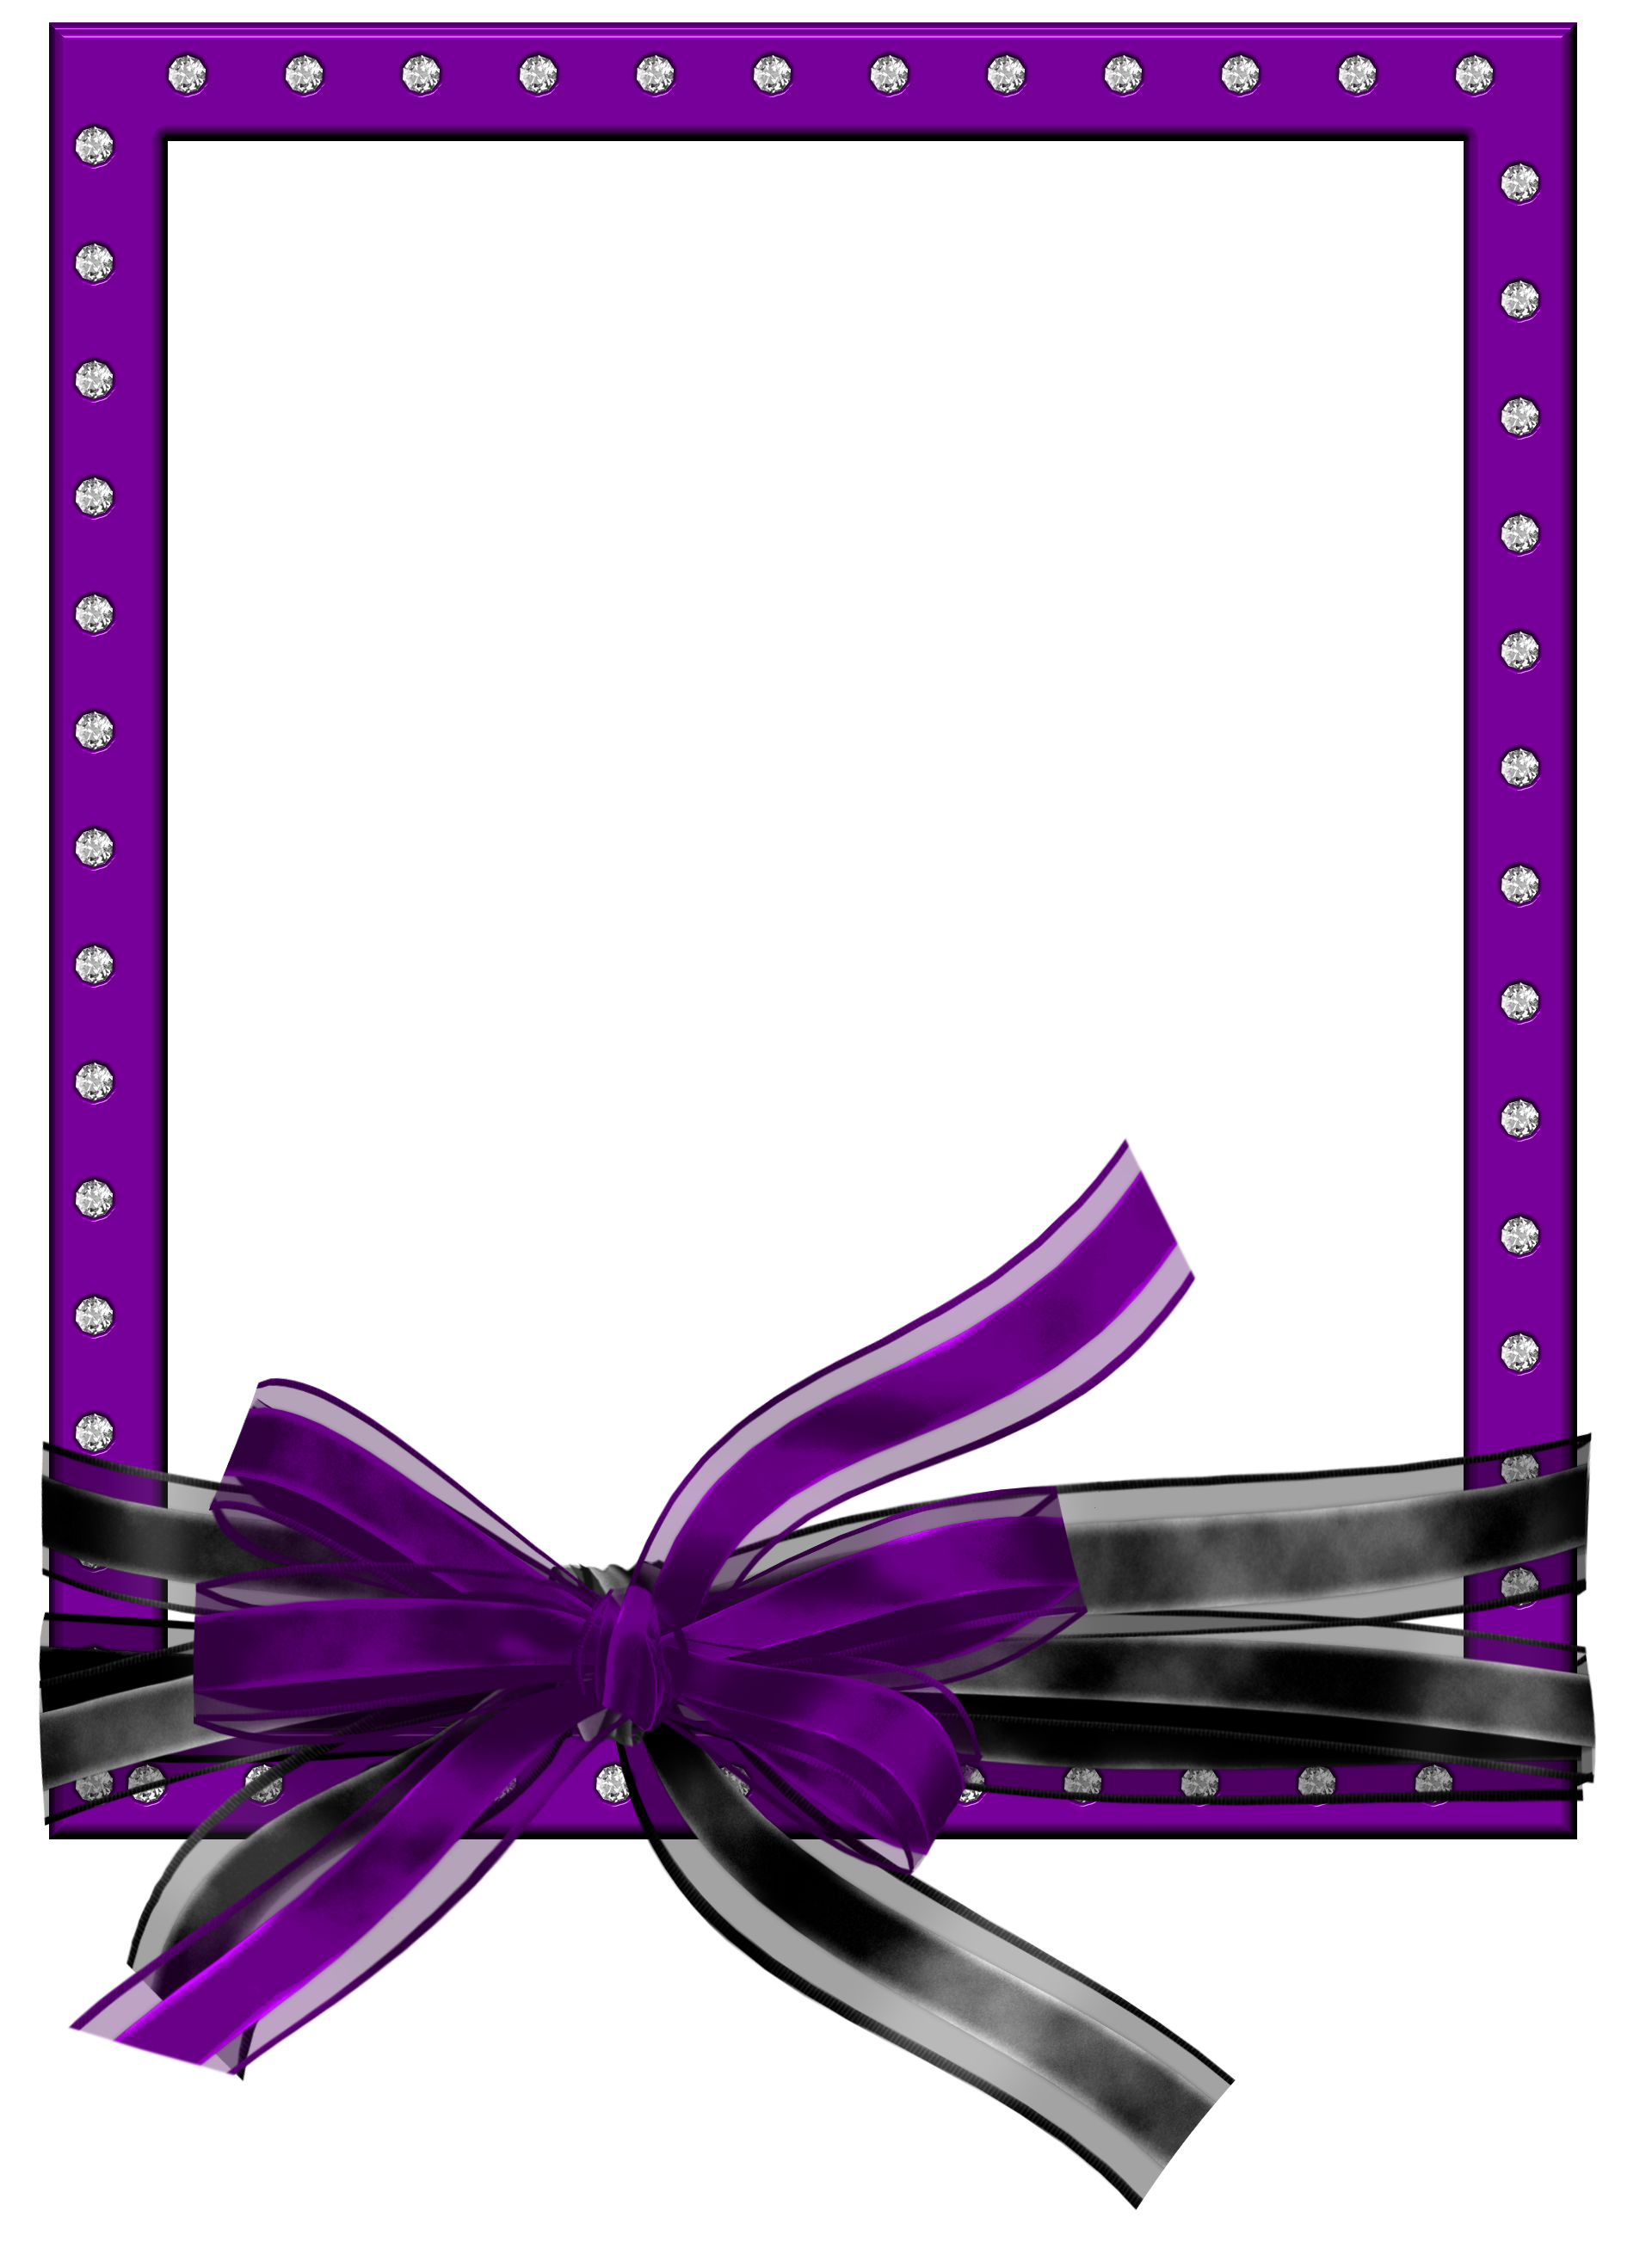 Purple ribbon muck greenidesign. Planner clipart black and white